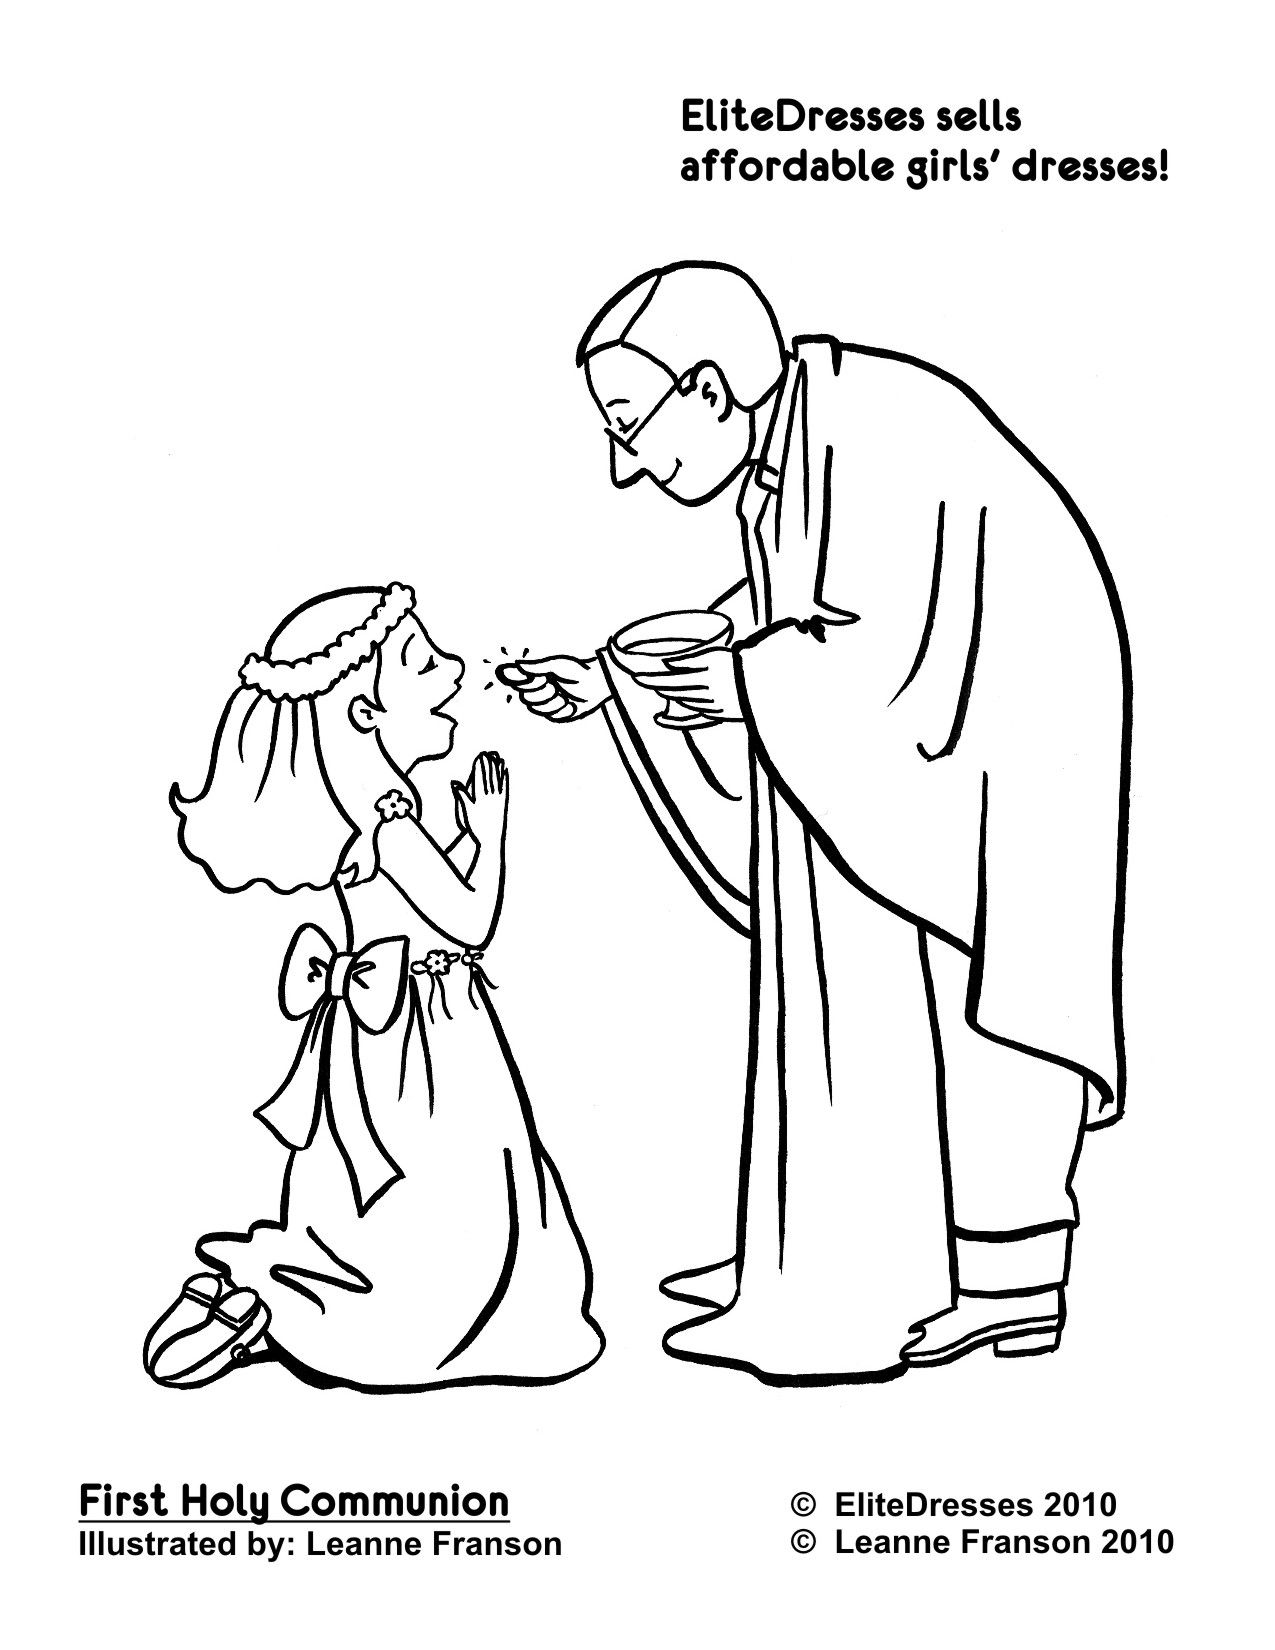 Childrens liturgy colouring pages - Printable Coloring Pages